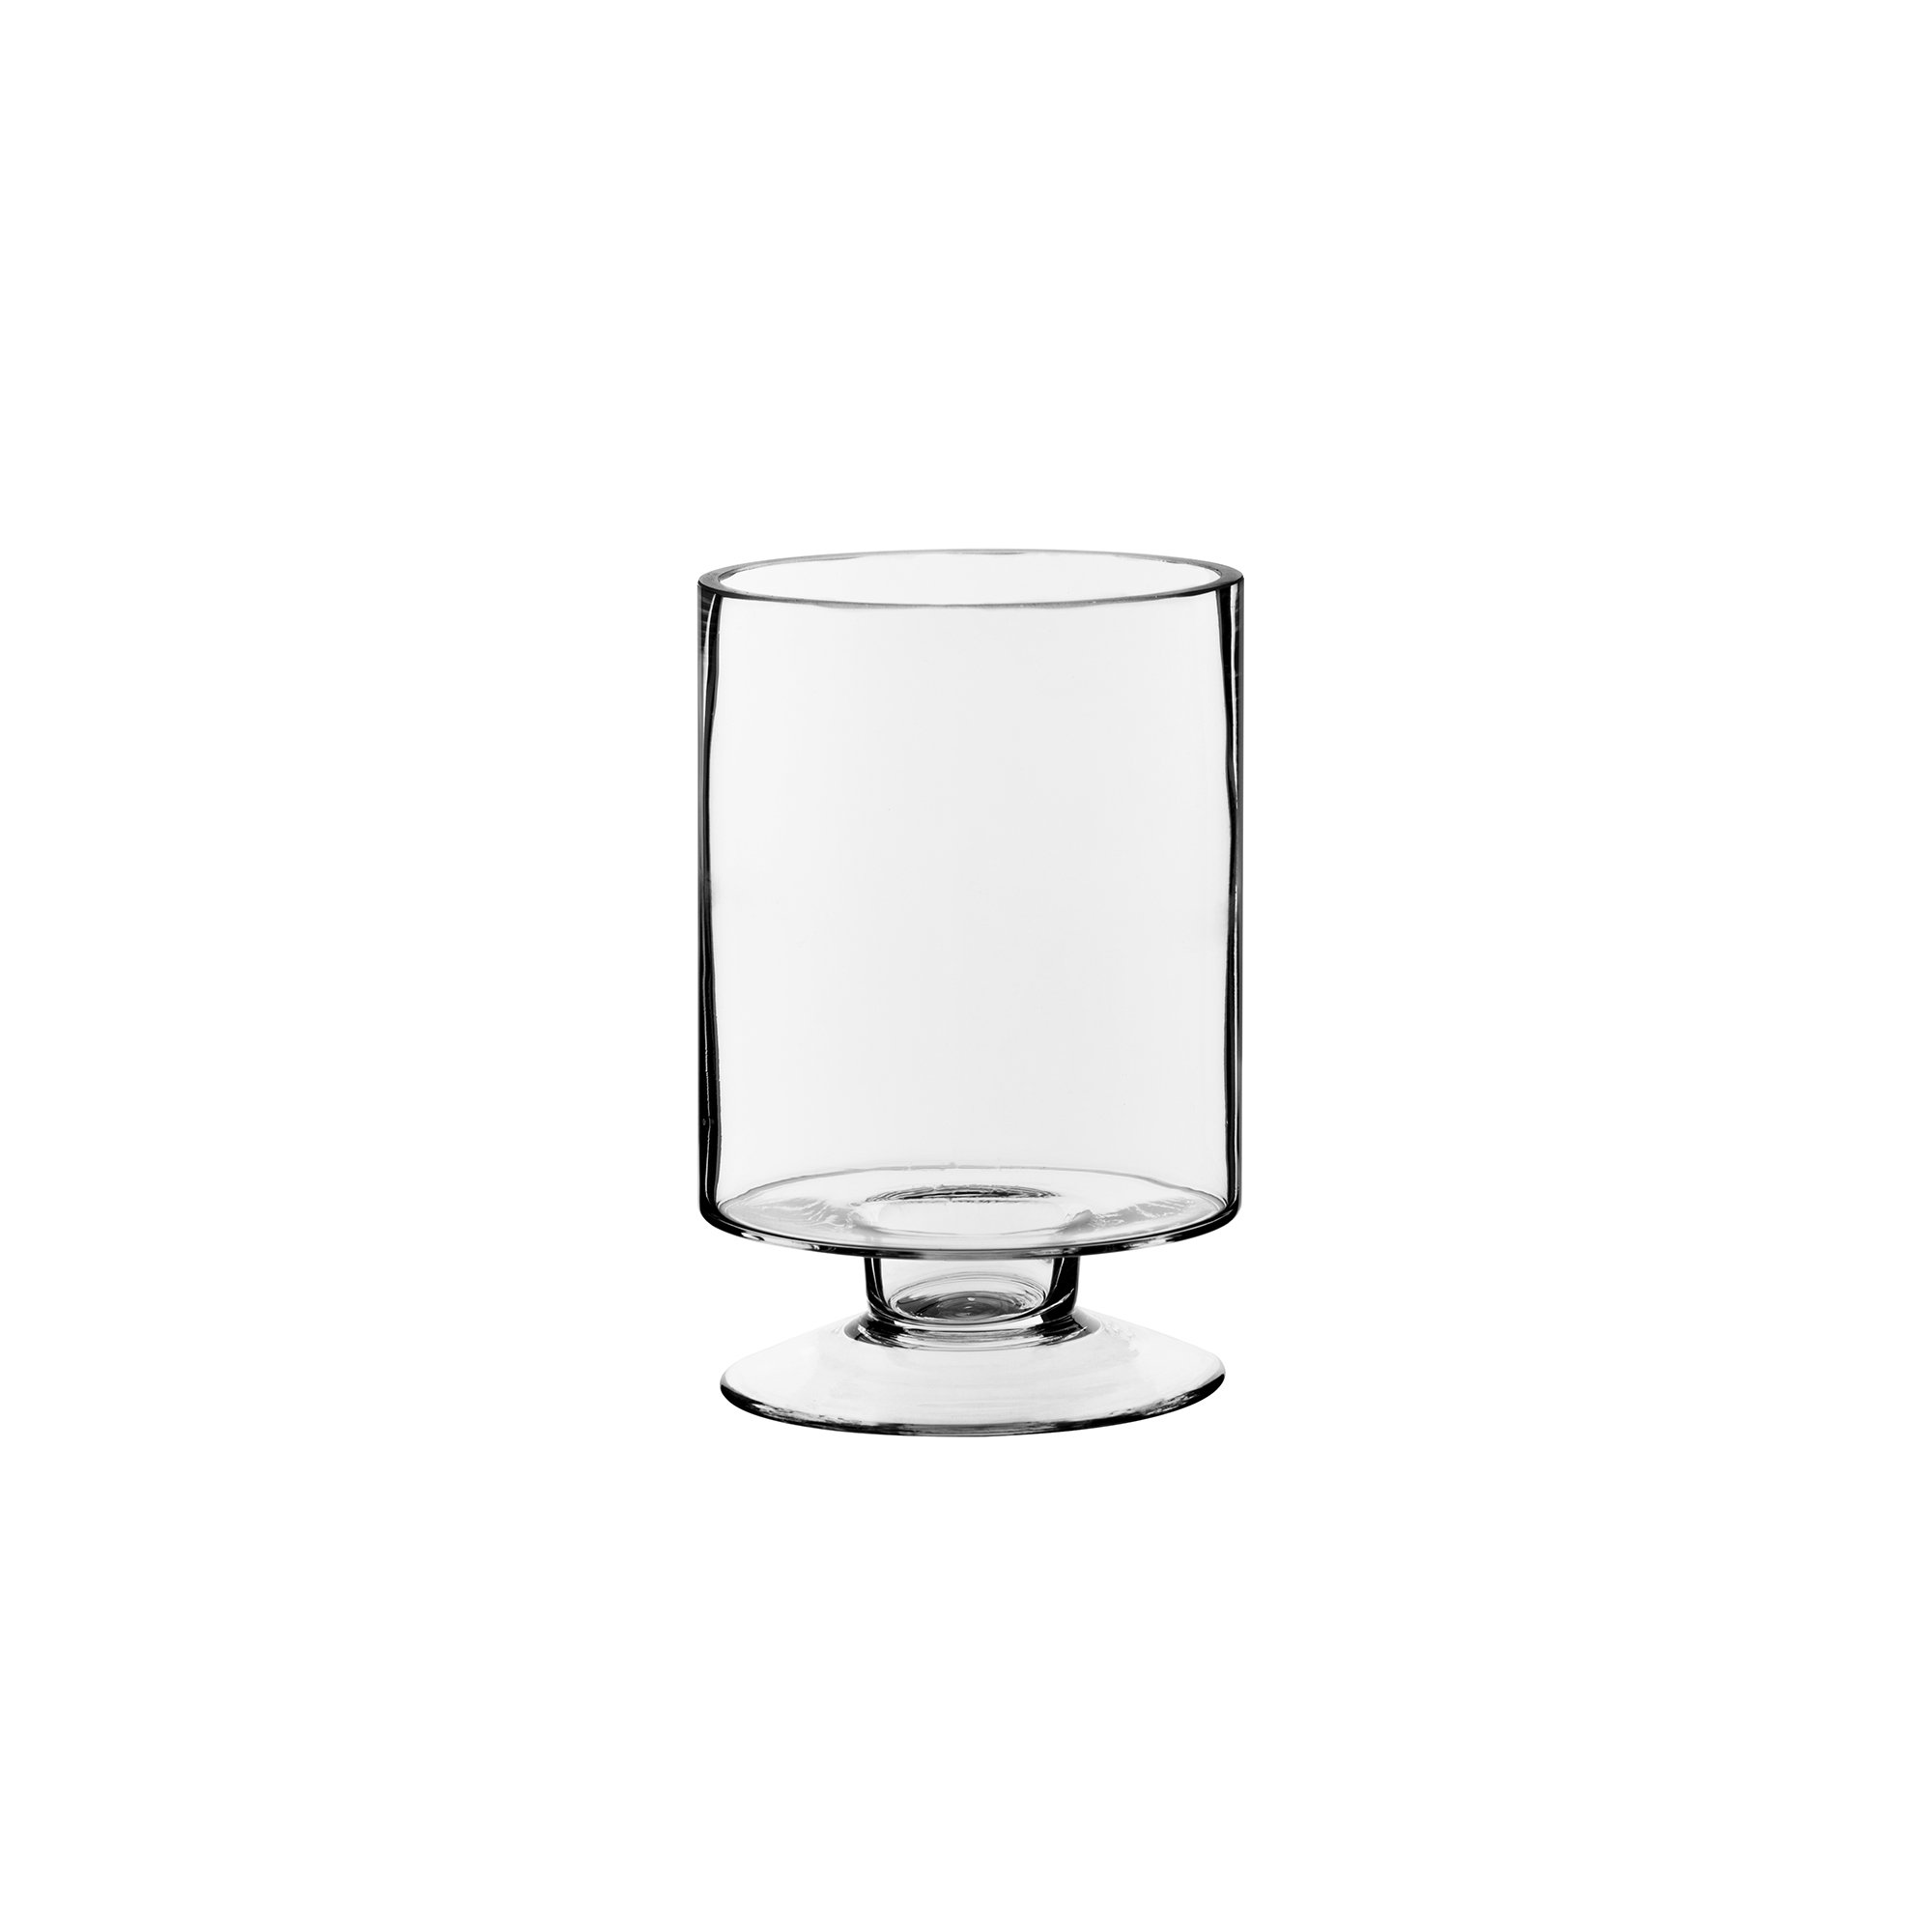 CYS EXCEL Glass Candle Holders, Hurricanes Candle Holders, Stemmed Candle Holders. Small Candleholders - Heights 6'' Open:3.75'' Base:3.5''), Pack of 6 pcs